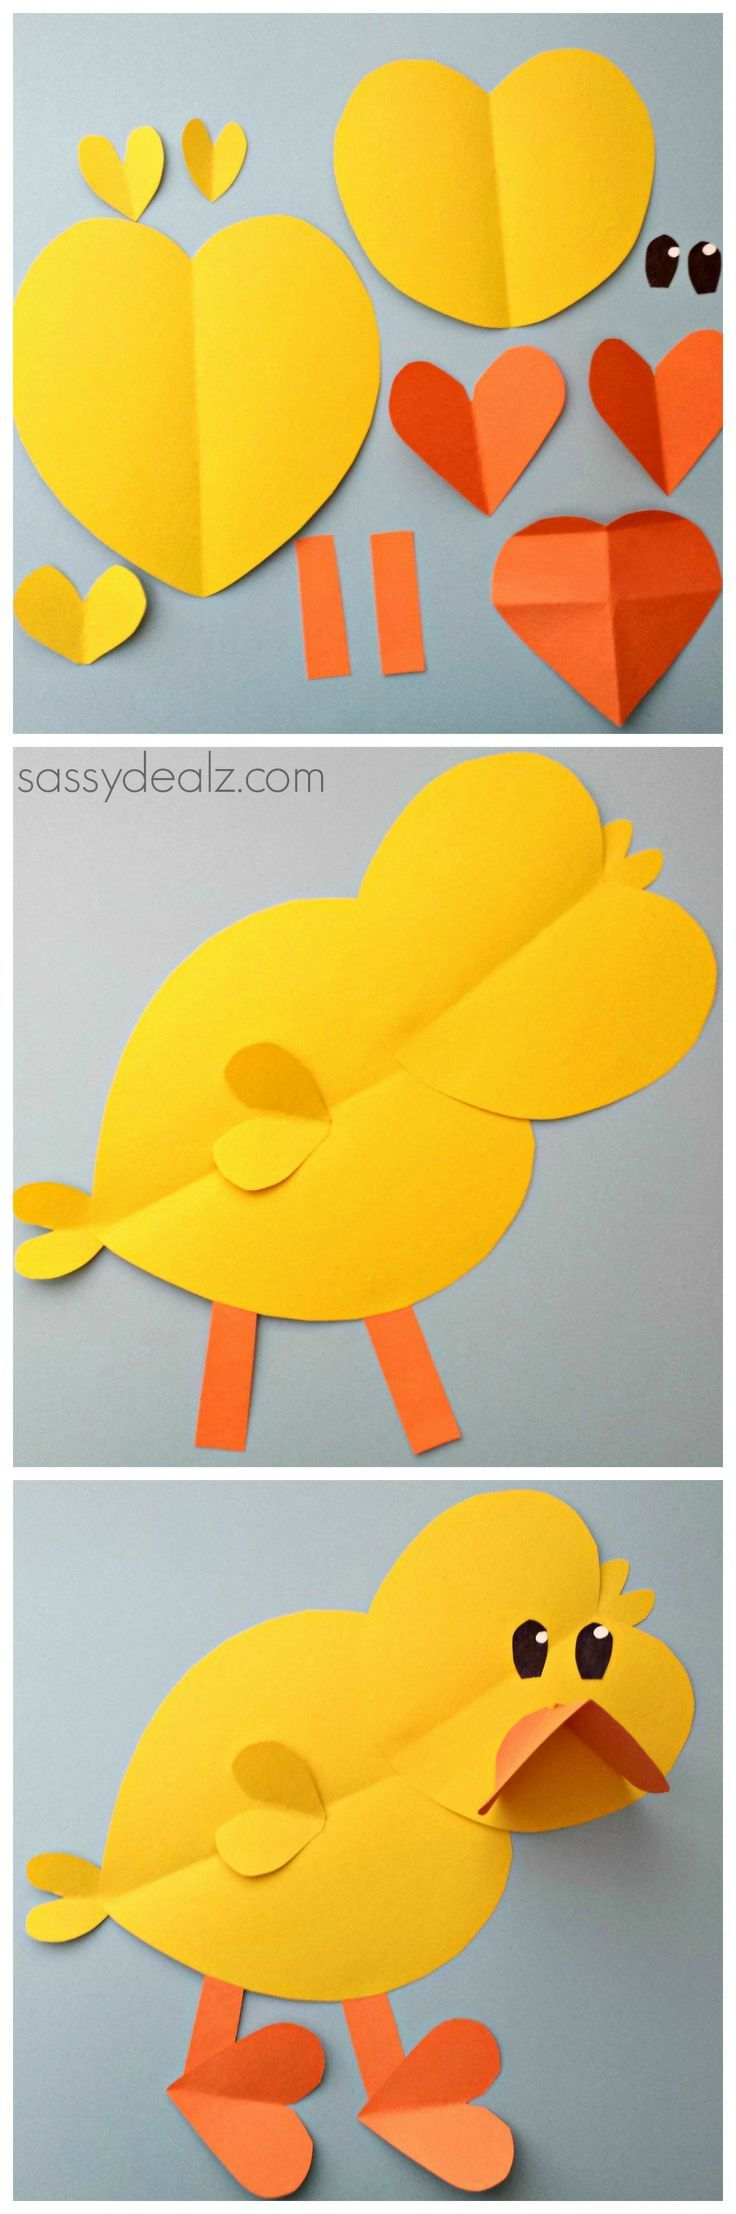 Chick Craft For Kids made out of paper hearts #DIY #Easter art project #Valentines heart shape animal | http://www.sassydealz.com/2014/02/paper-chick-craft-kids.html